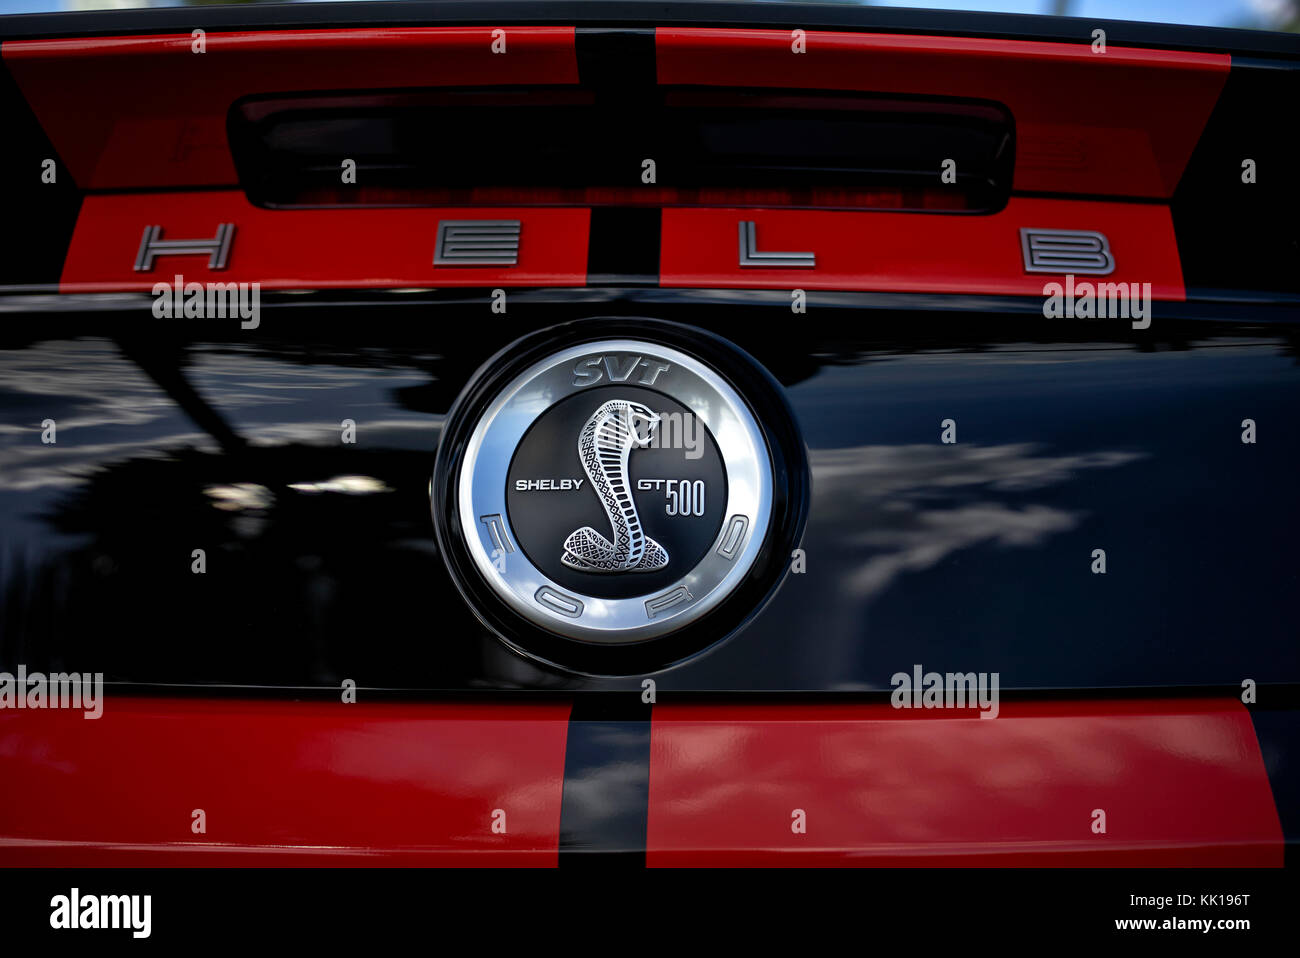 Badge and iconic insignia detail of a Ford Mustang Shelby GT500 American muscle car. - Stock Image